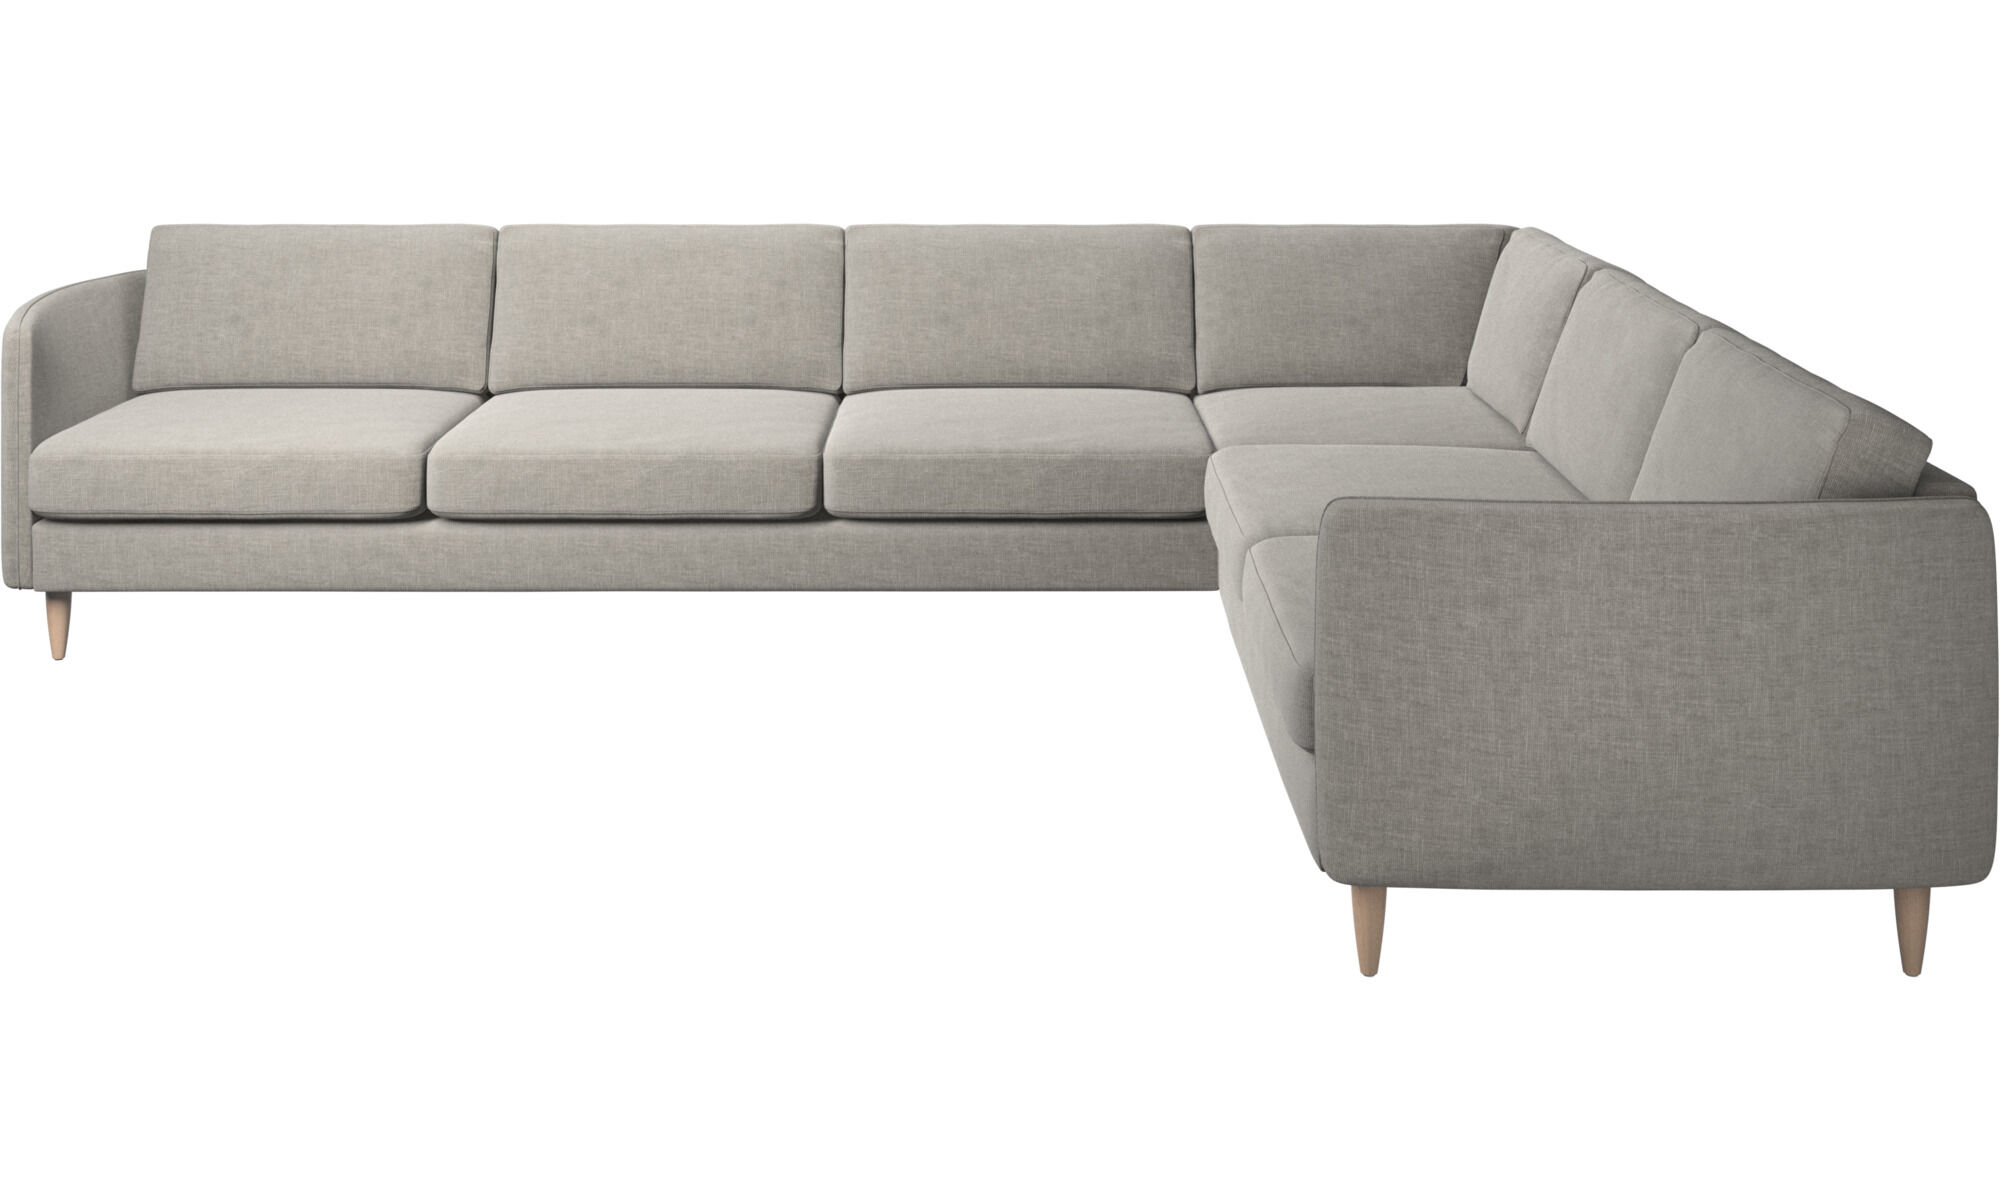 Corner Sofas   Osaka Corner Sofa, Regular Seat   Grey   Fabric